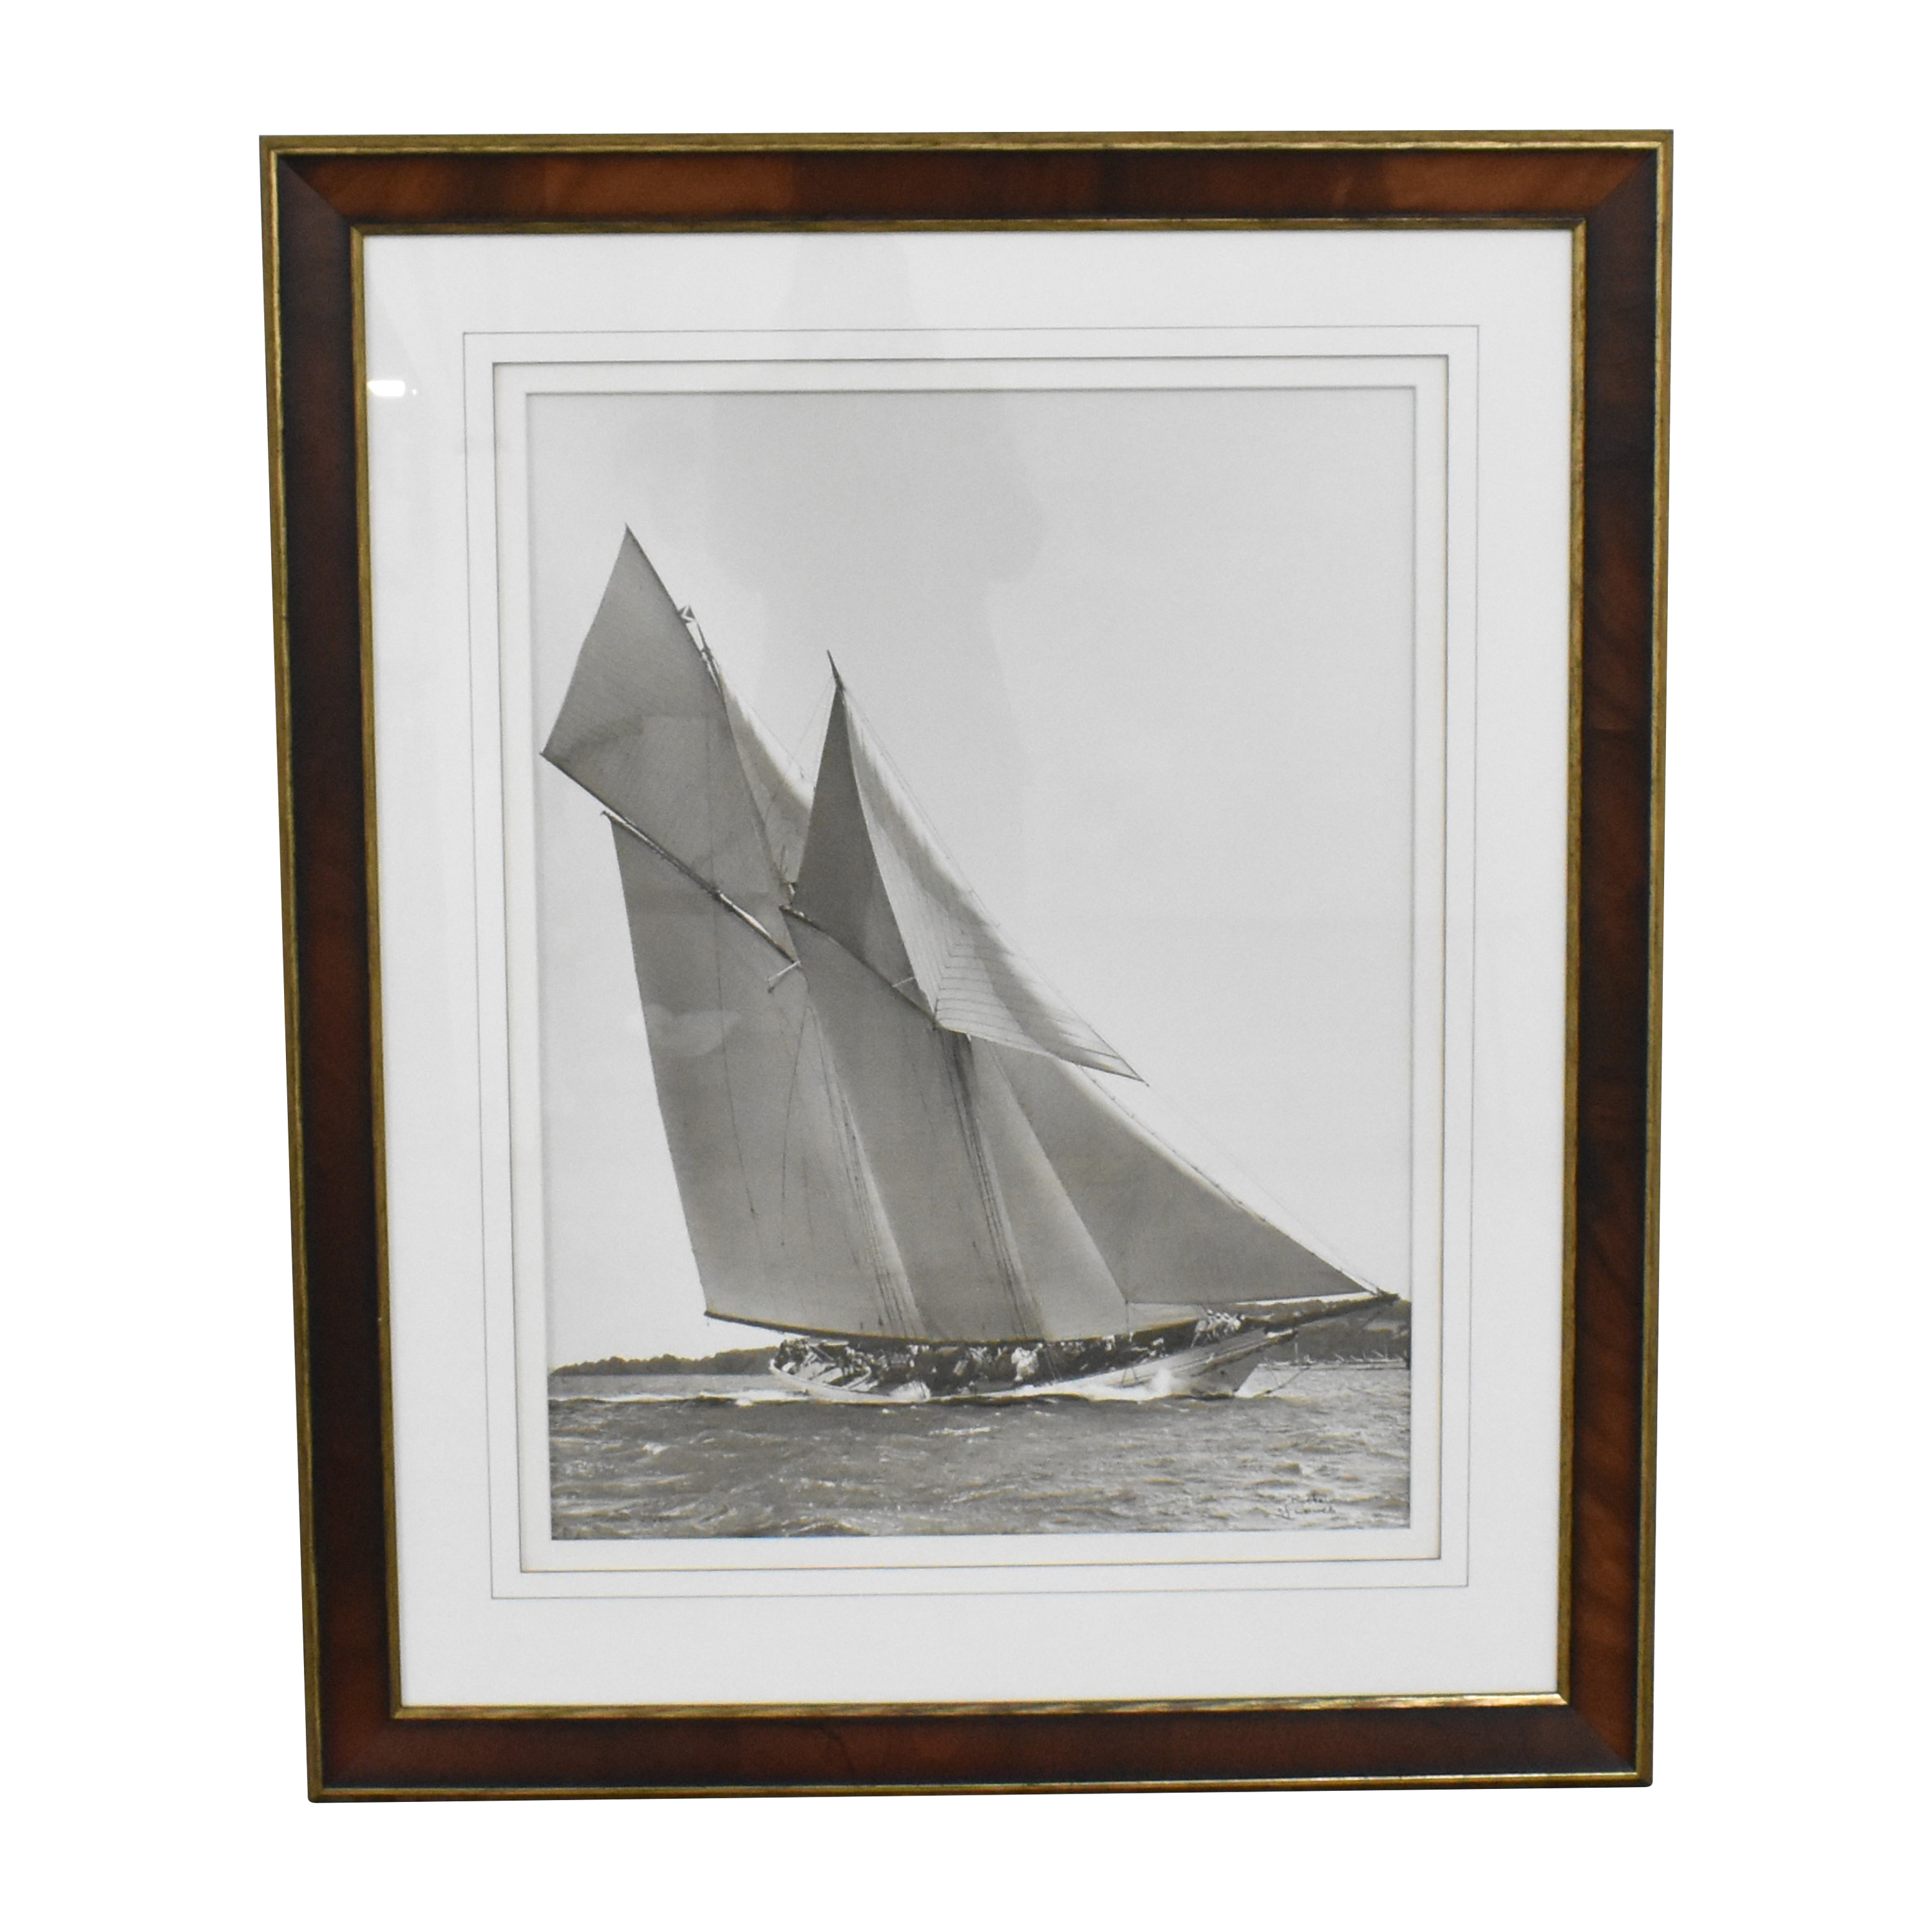 Ethan Allen  Ethan Allen Cetonia 1911 Racing Yacht Framed Art nyc